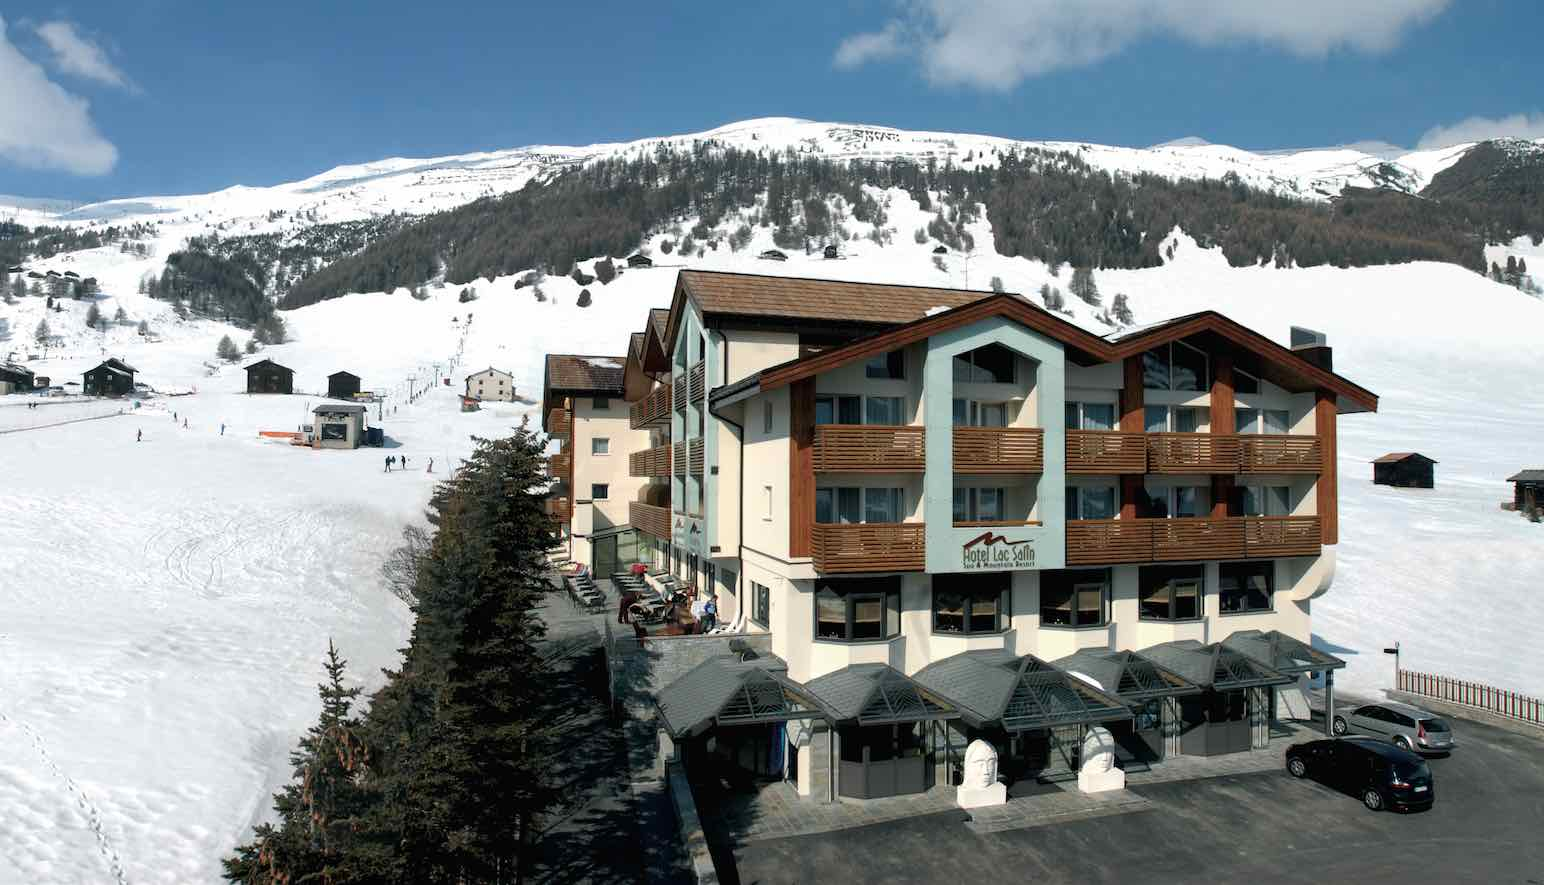 Hotel Lac Salin and Mountain resort - Via Saroch N.496d, Livigno 23041